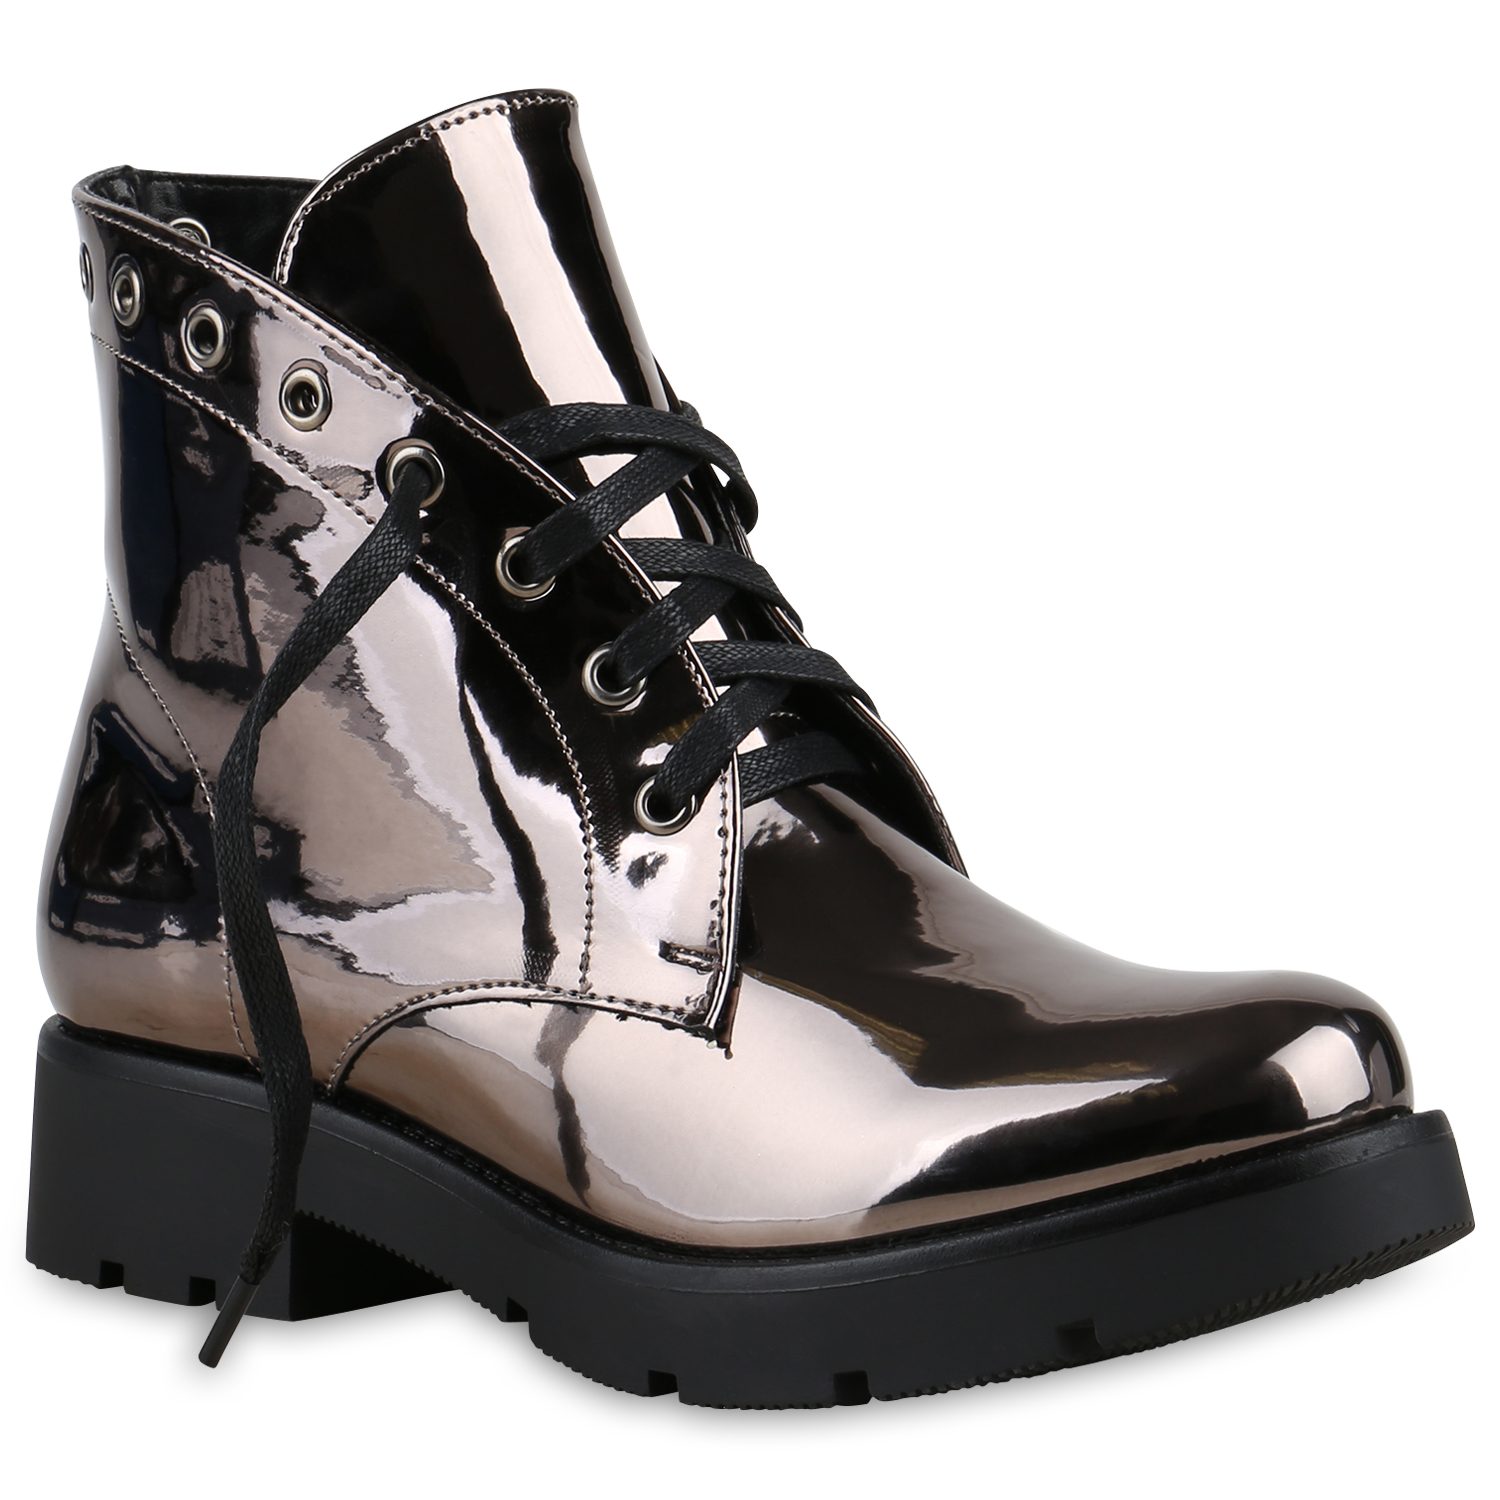 damen stiefeletten lack metallic boots schn rstiefeletten schuhe 814094 top ebay. Black Bedroom Furniture Sets. Home Design Ideas